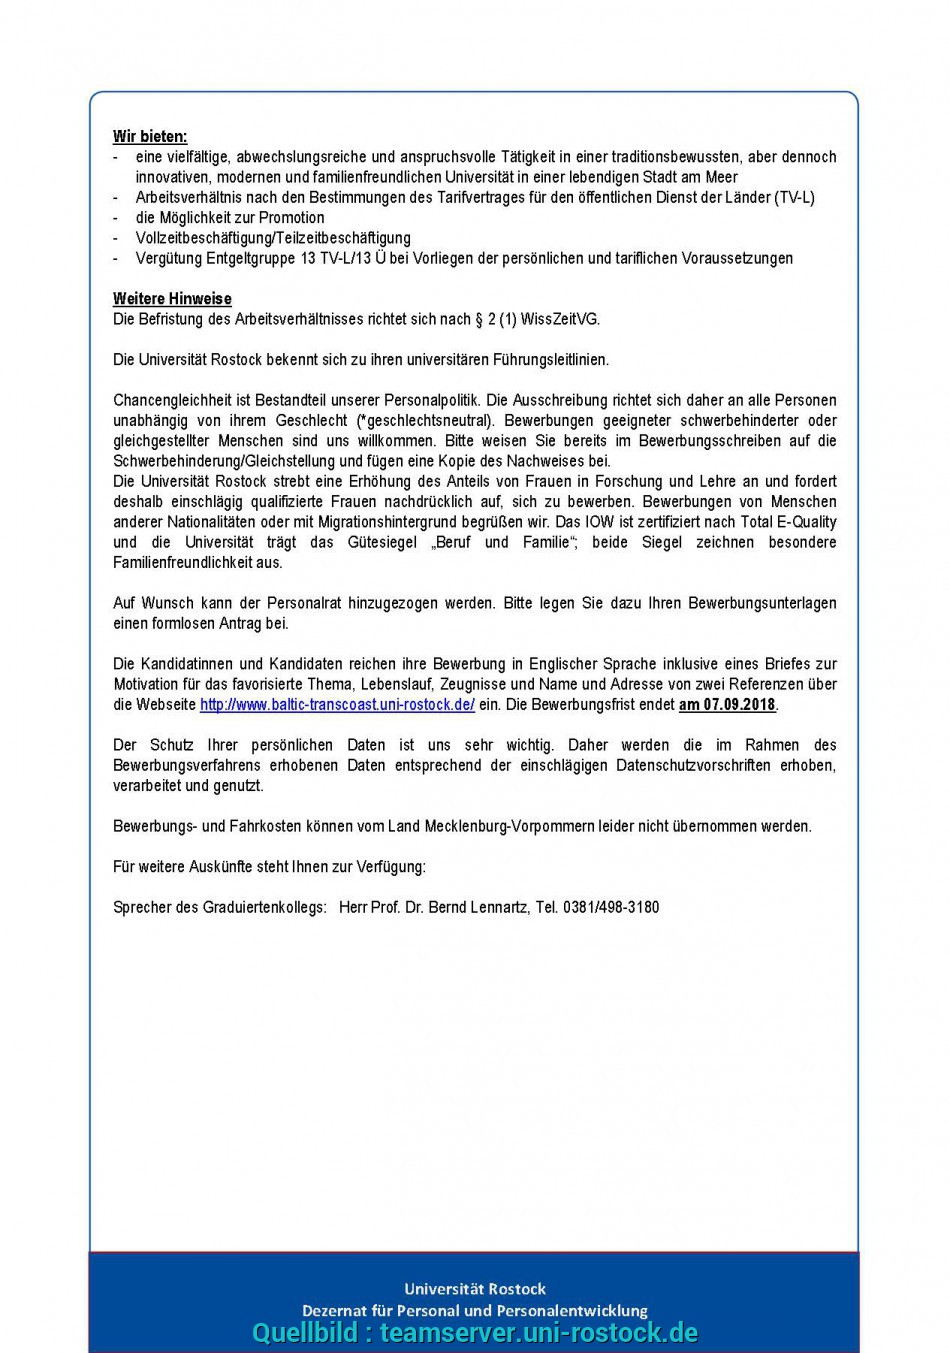 Wertvoll D101-18_Advertisement_Phd_Candidates_Starting_2019_Seite_1.Jpg D101-18_Advertisement_Phd_Candidates_Starting_2019_Seite_2.Jpg, Uni Kiel Bewerbungsunterlagen Adresse